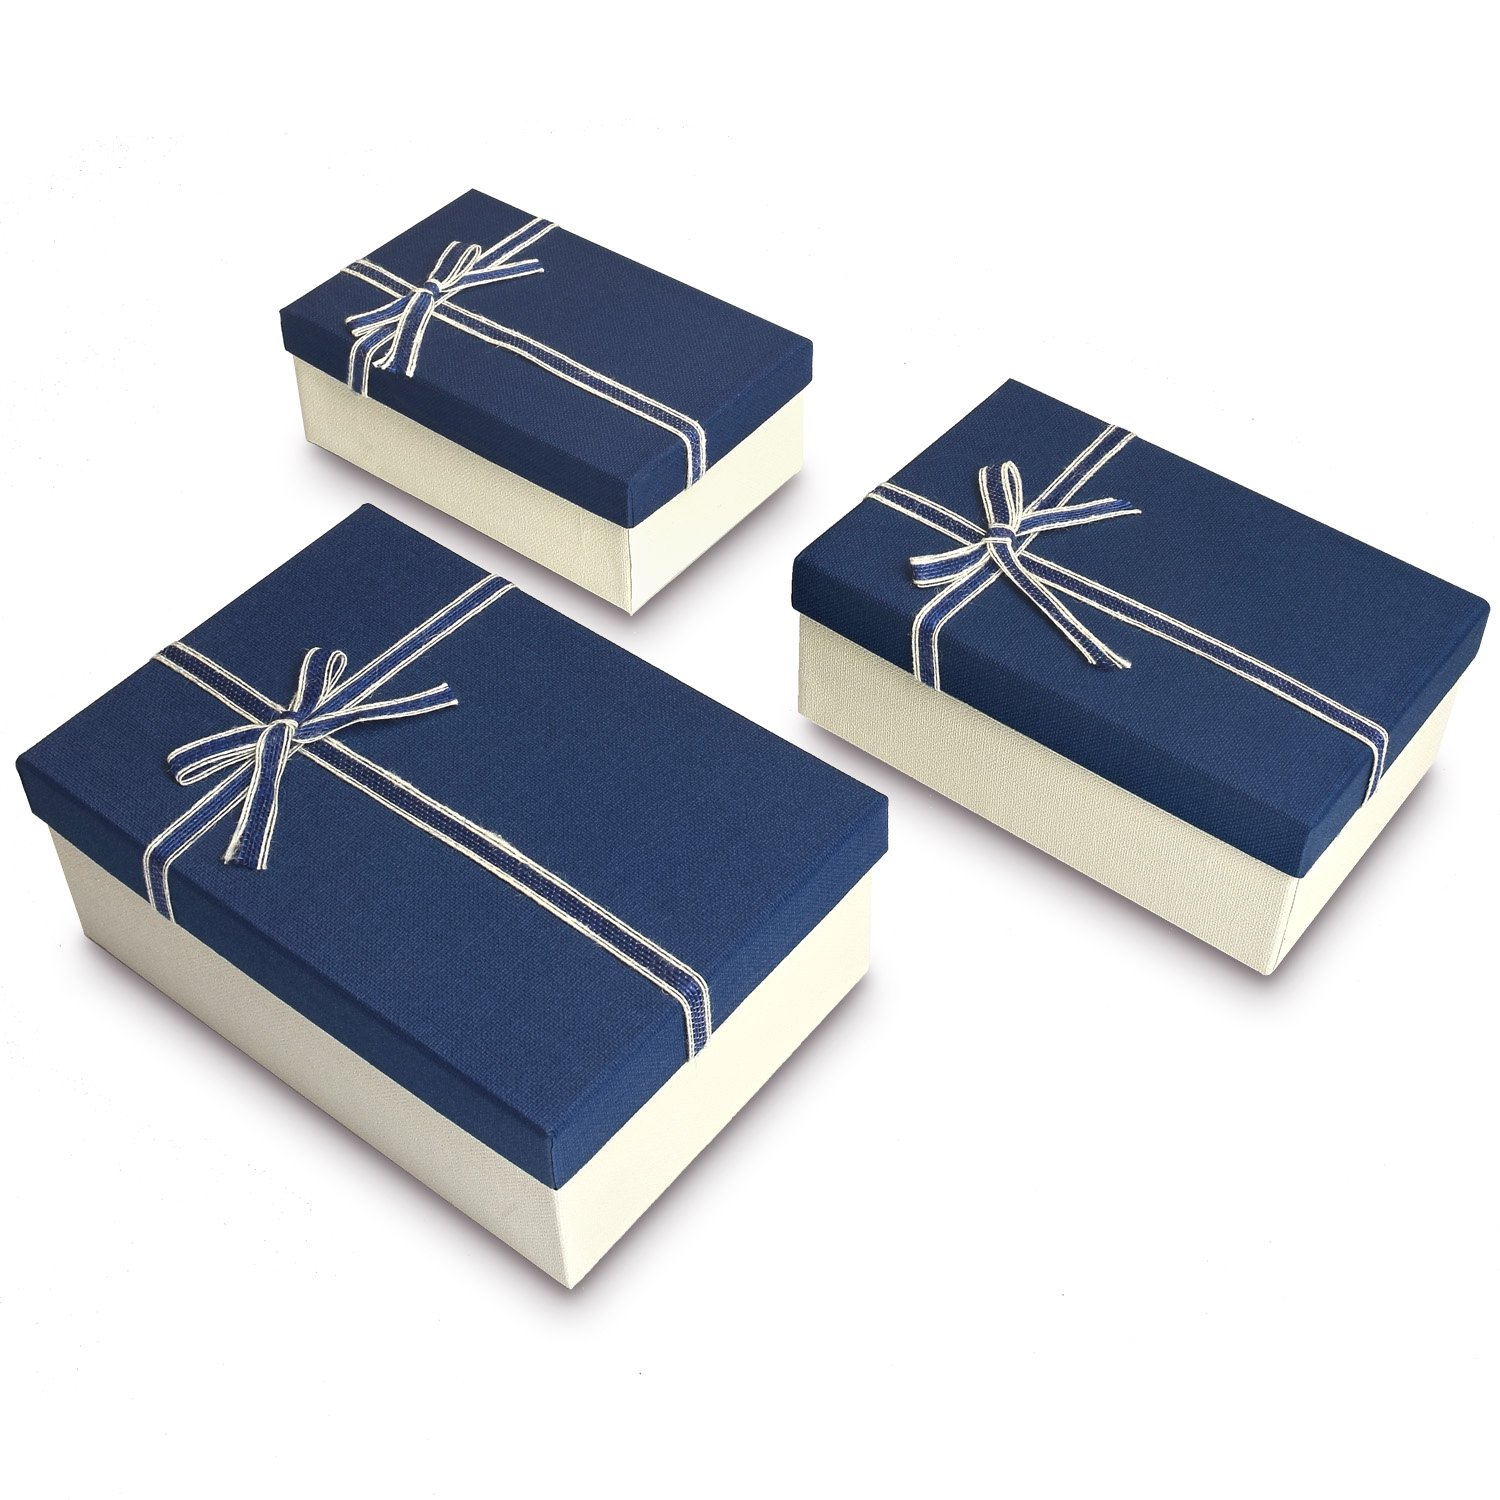 Nesting Gift Boxes, A Set of 3, Blue Color with A Bowtie